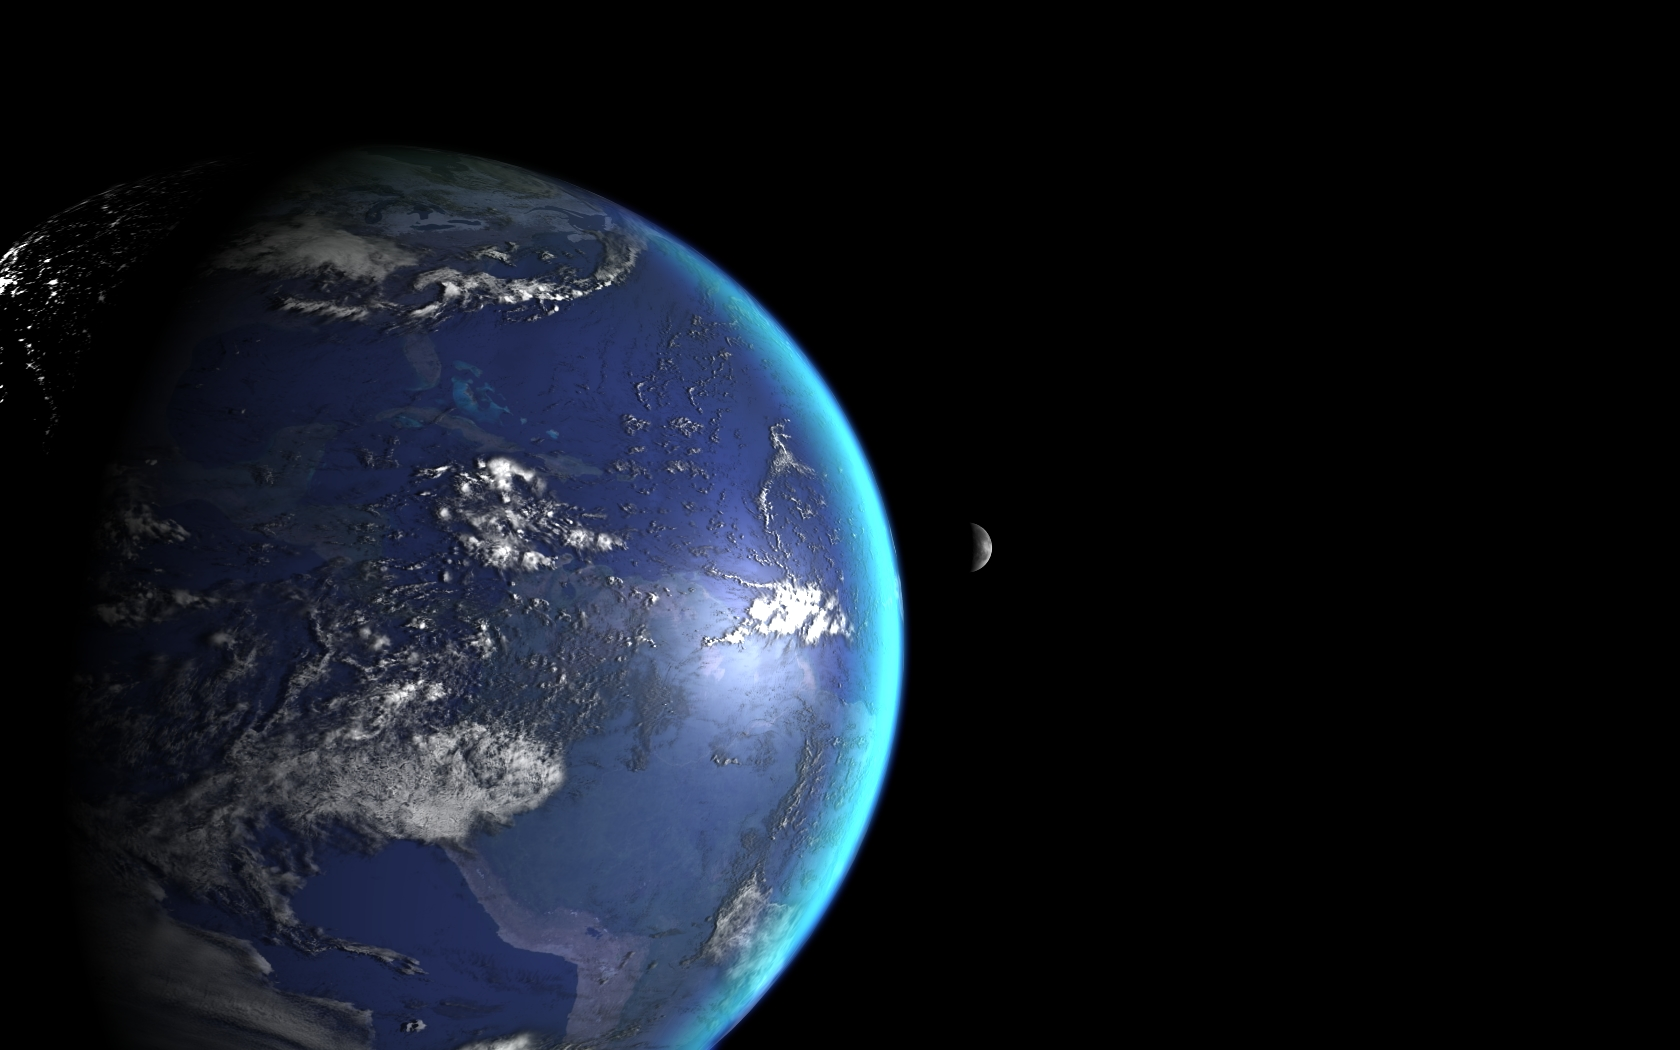 View of moon from earth